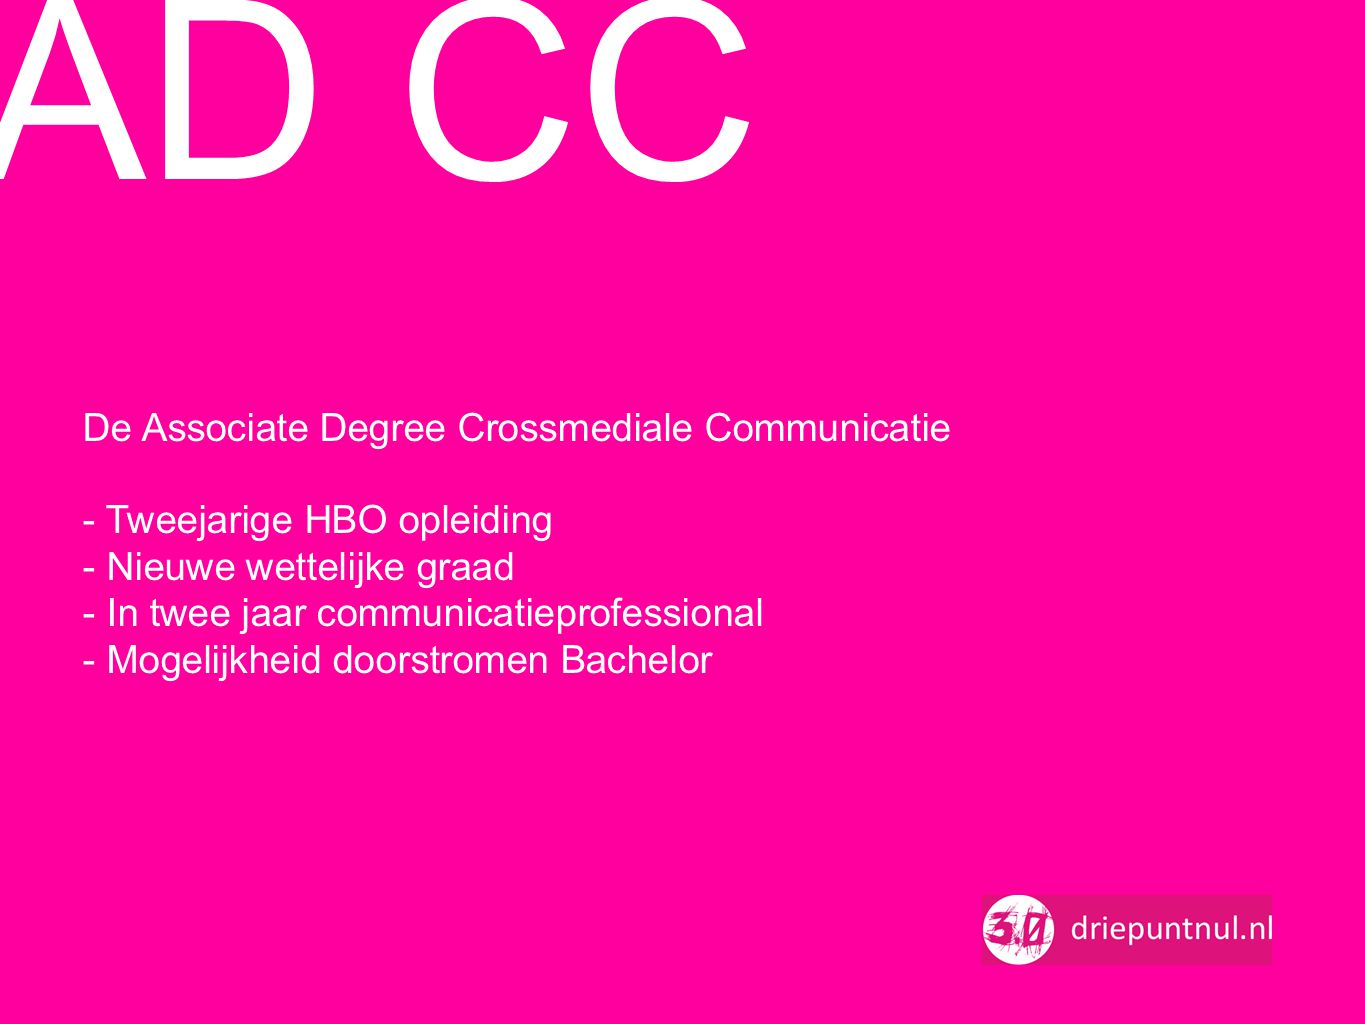 AD CC De Associate Degree Crossmediale Communicatie